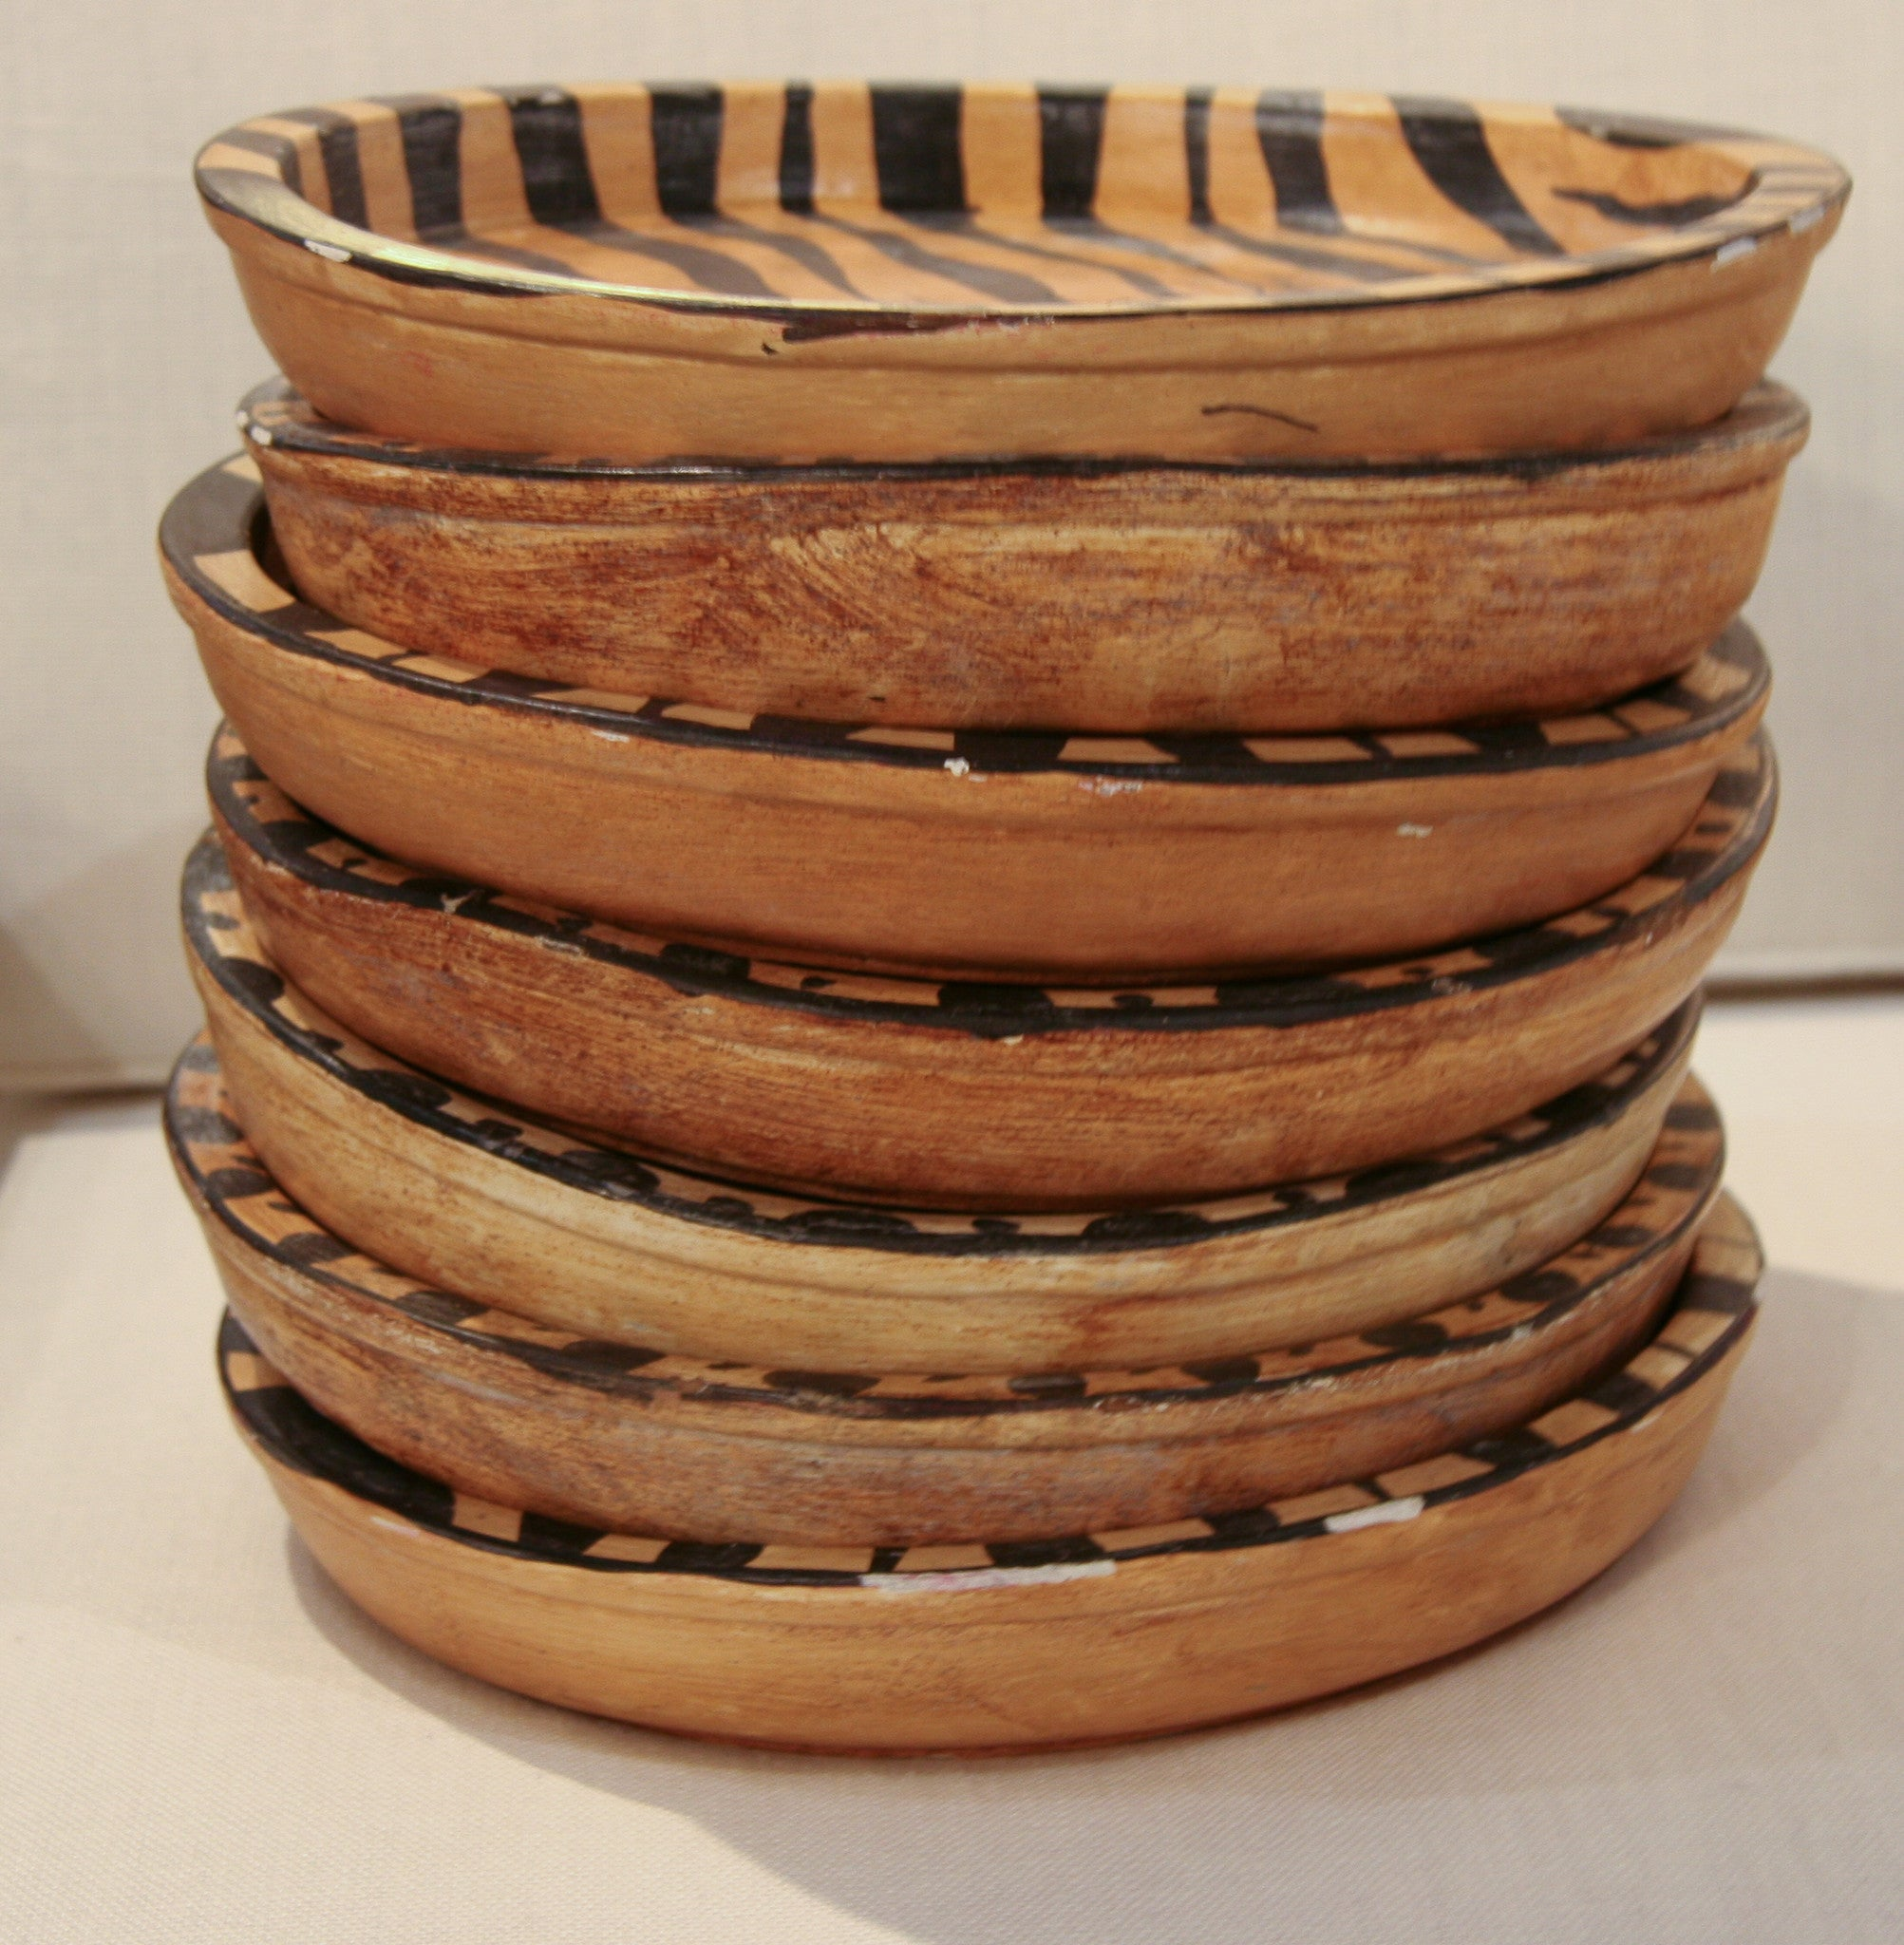 Vintage Set of 7 Wood Animal Print Chargers, Dishes